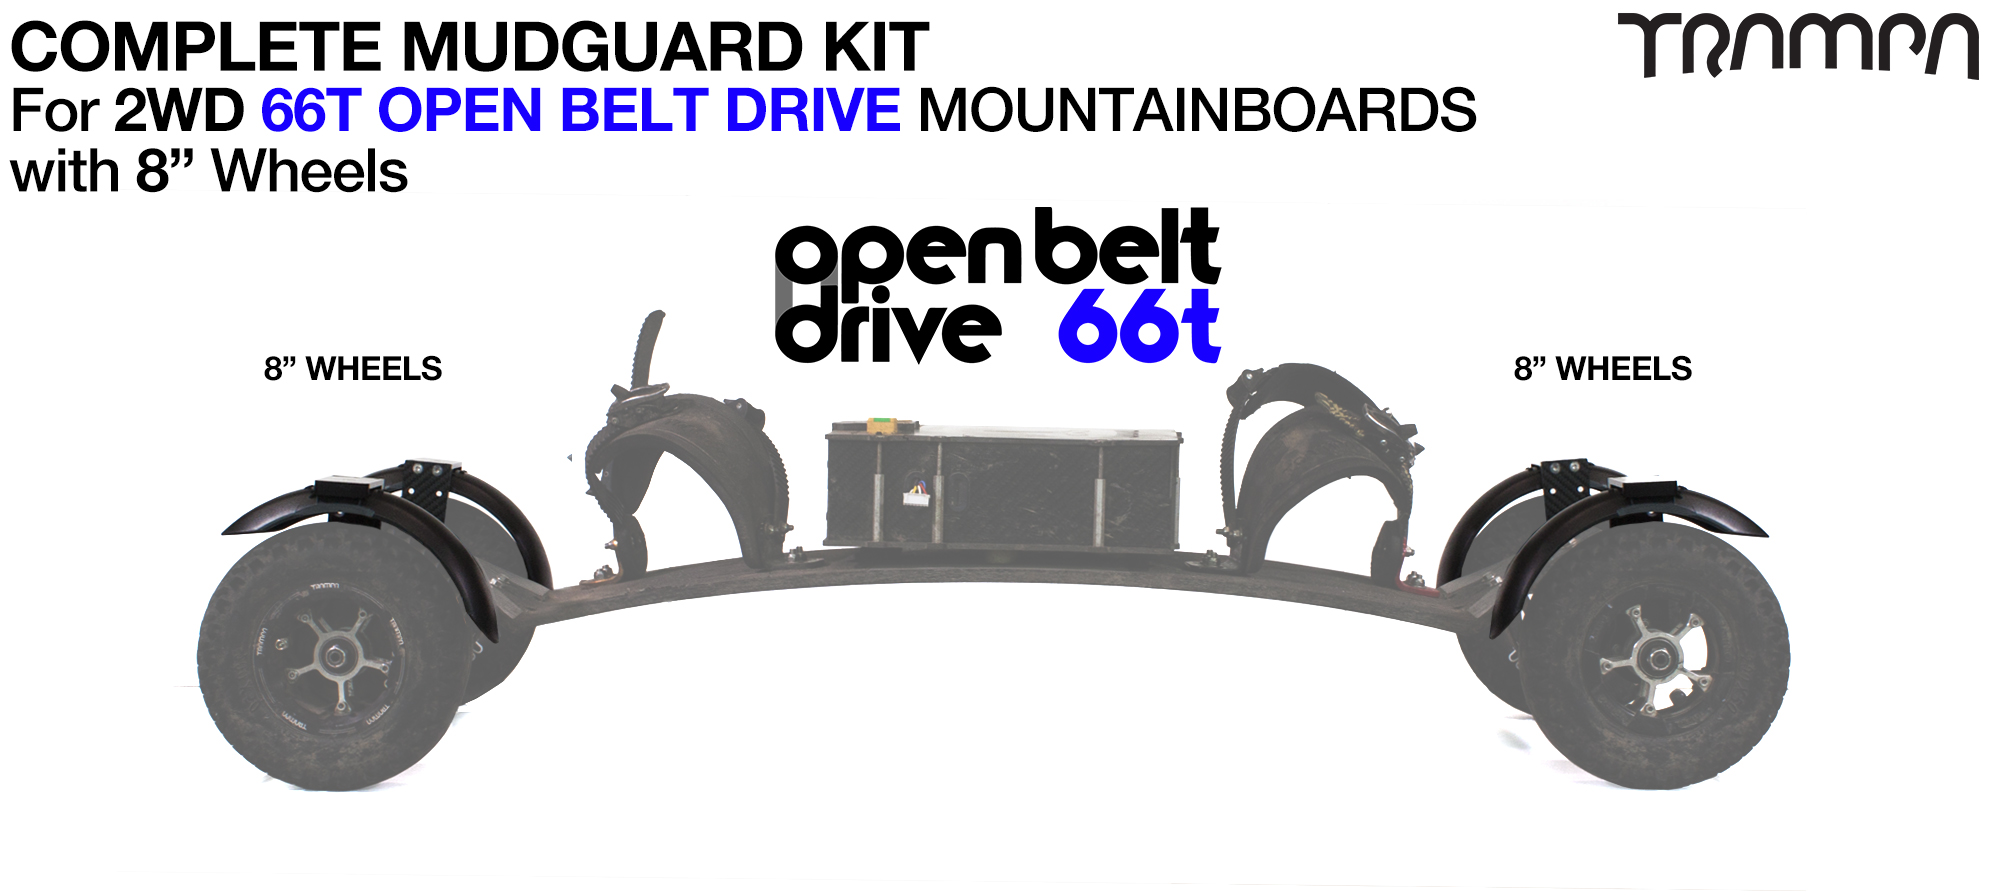 "Full Mudguard Kit for 2WD 66T OPEN BELT DRIVE Mountainboards - 8"" Wheels All round"